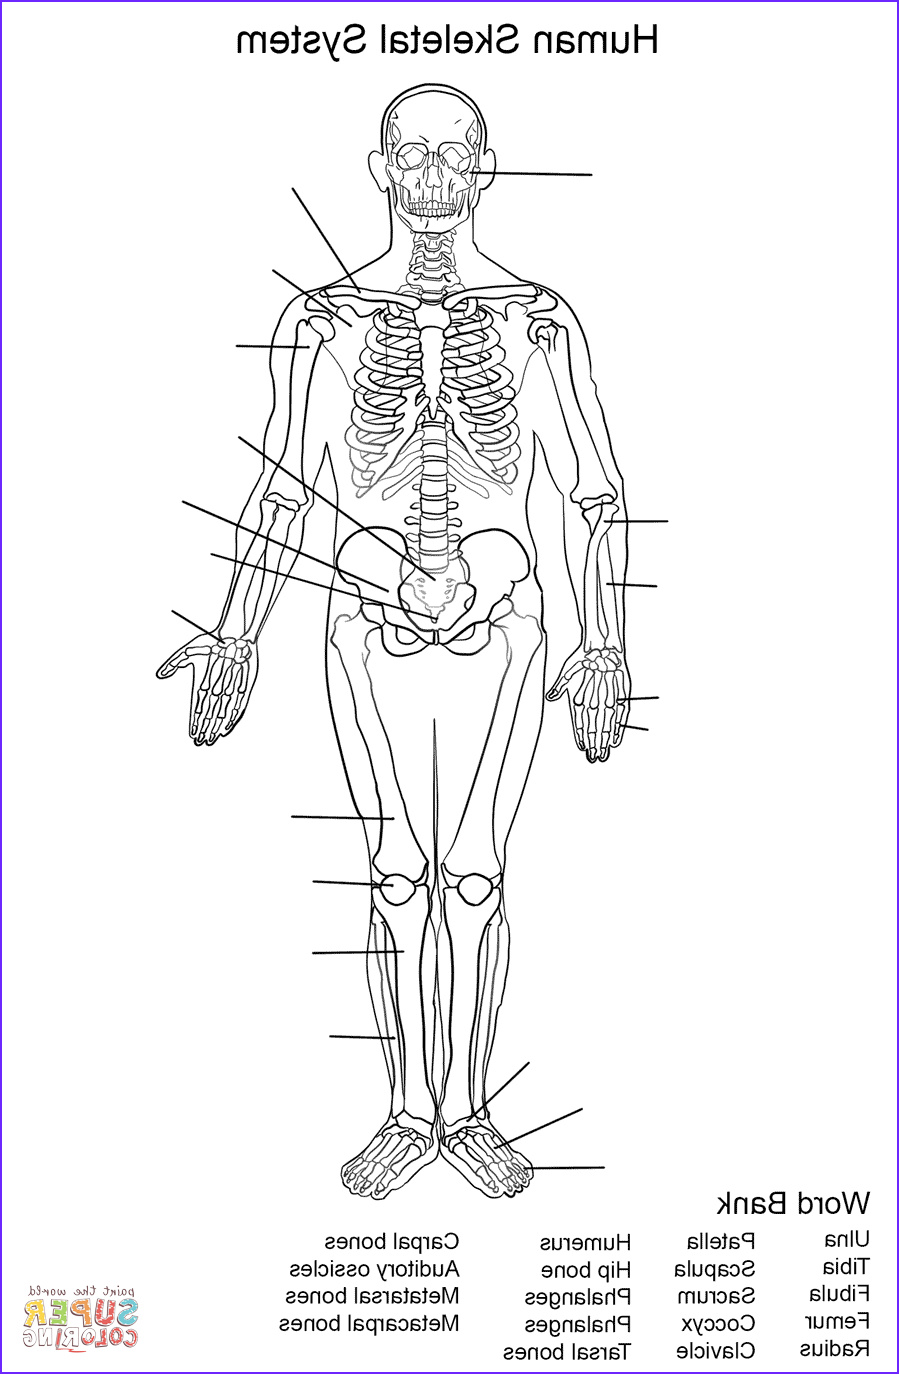 Skeletal System Coloring Pages Cool Image Human Skeletal System Worksheet Coloring Page